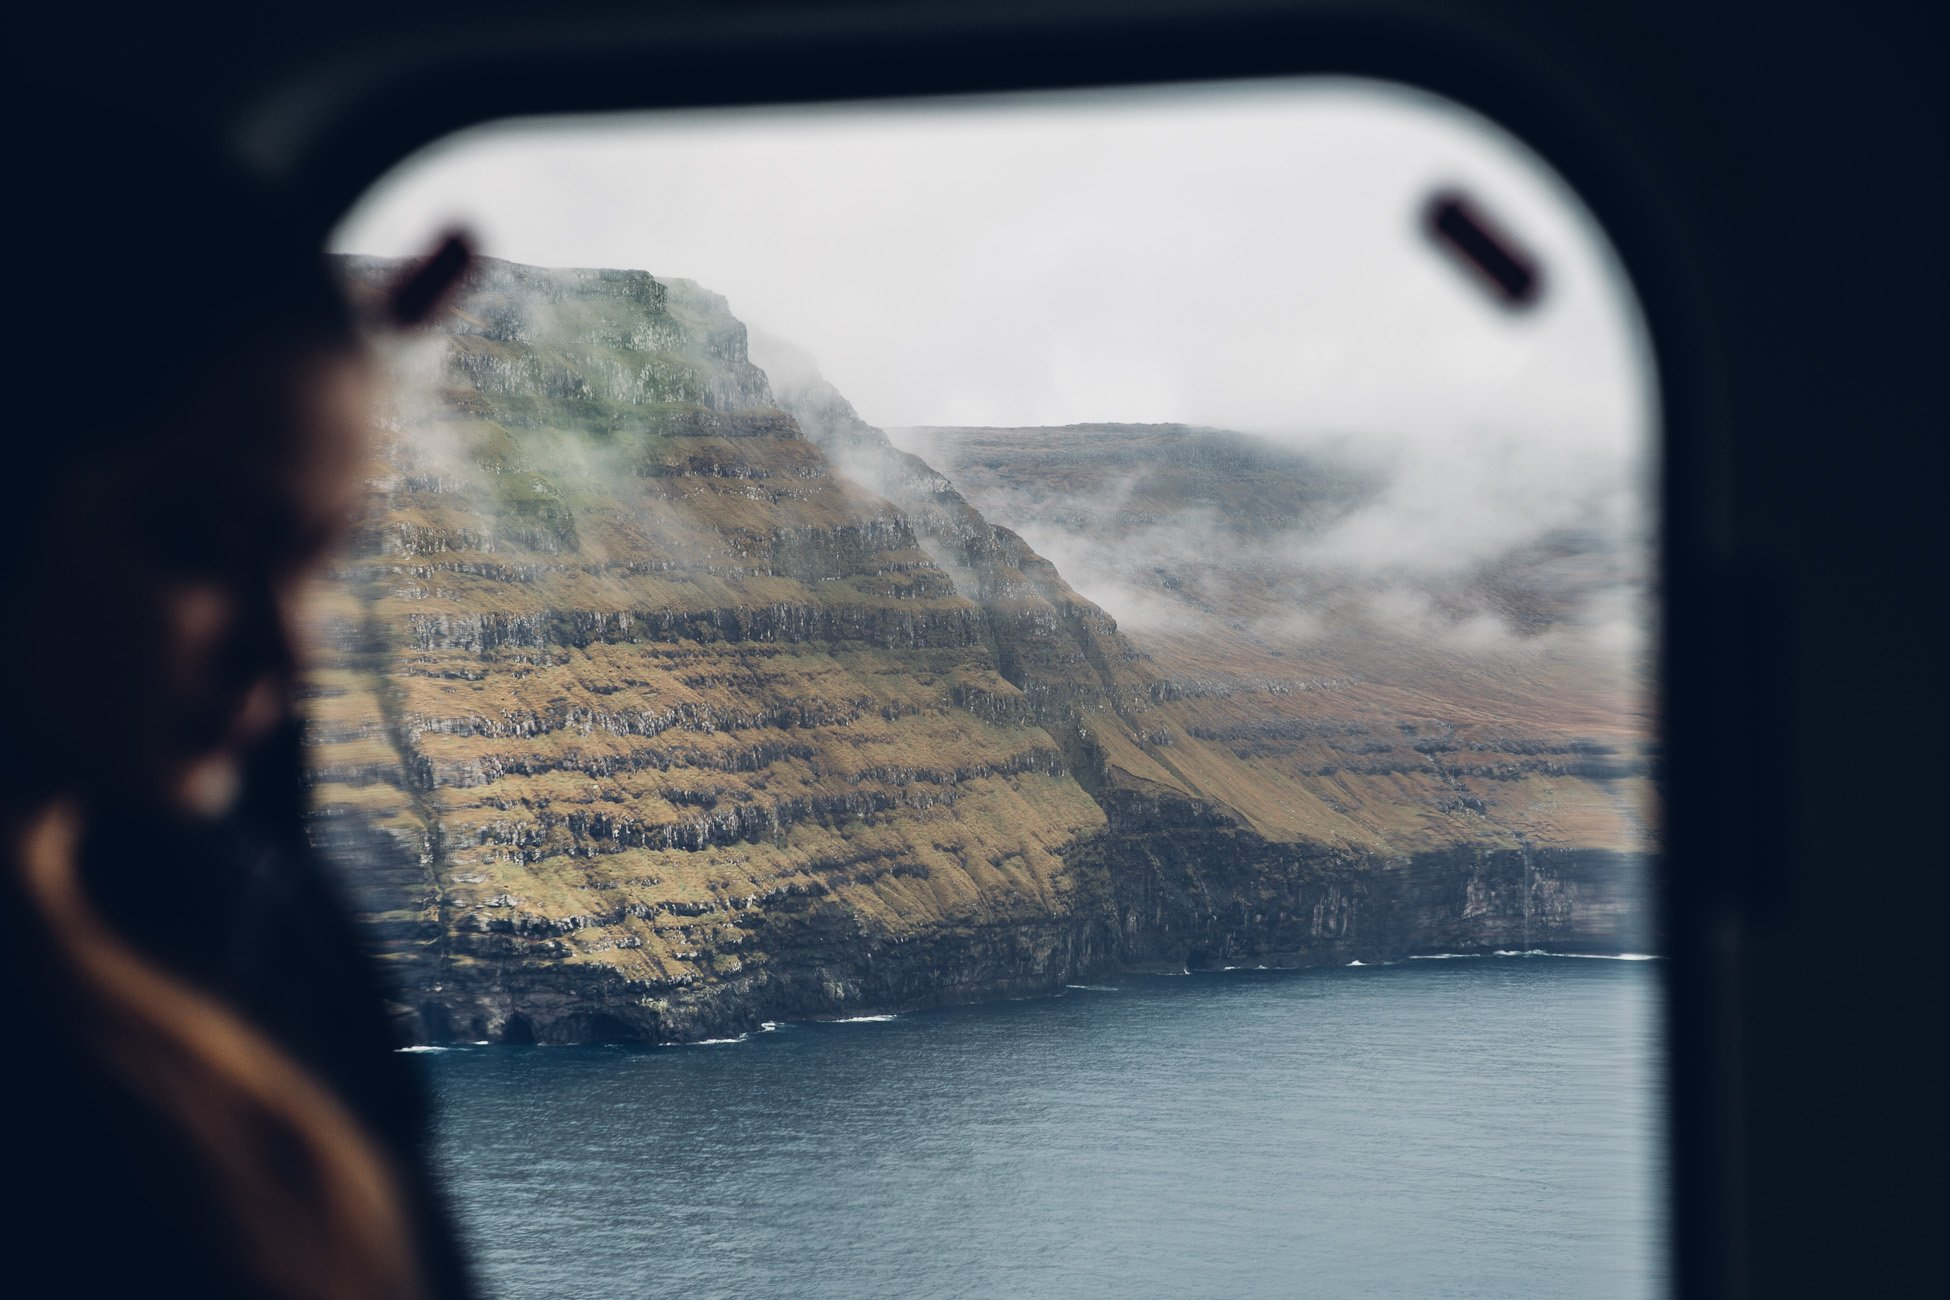 Helicopter Ride to Fugloy on the Faroe Islands